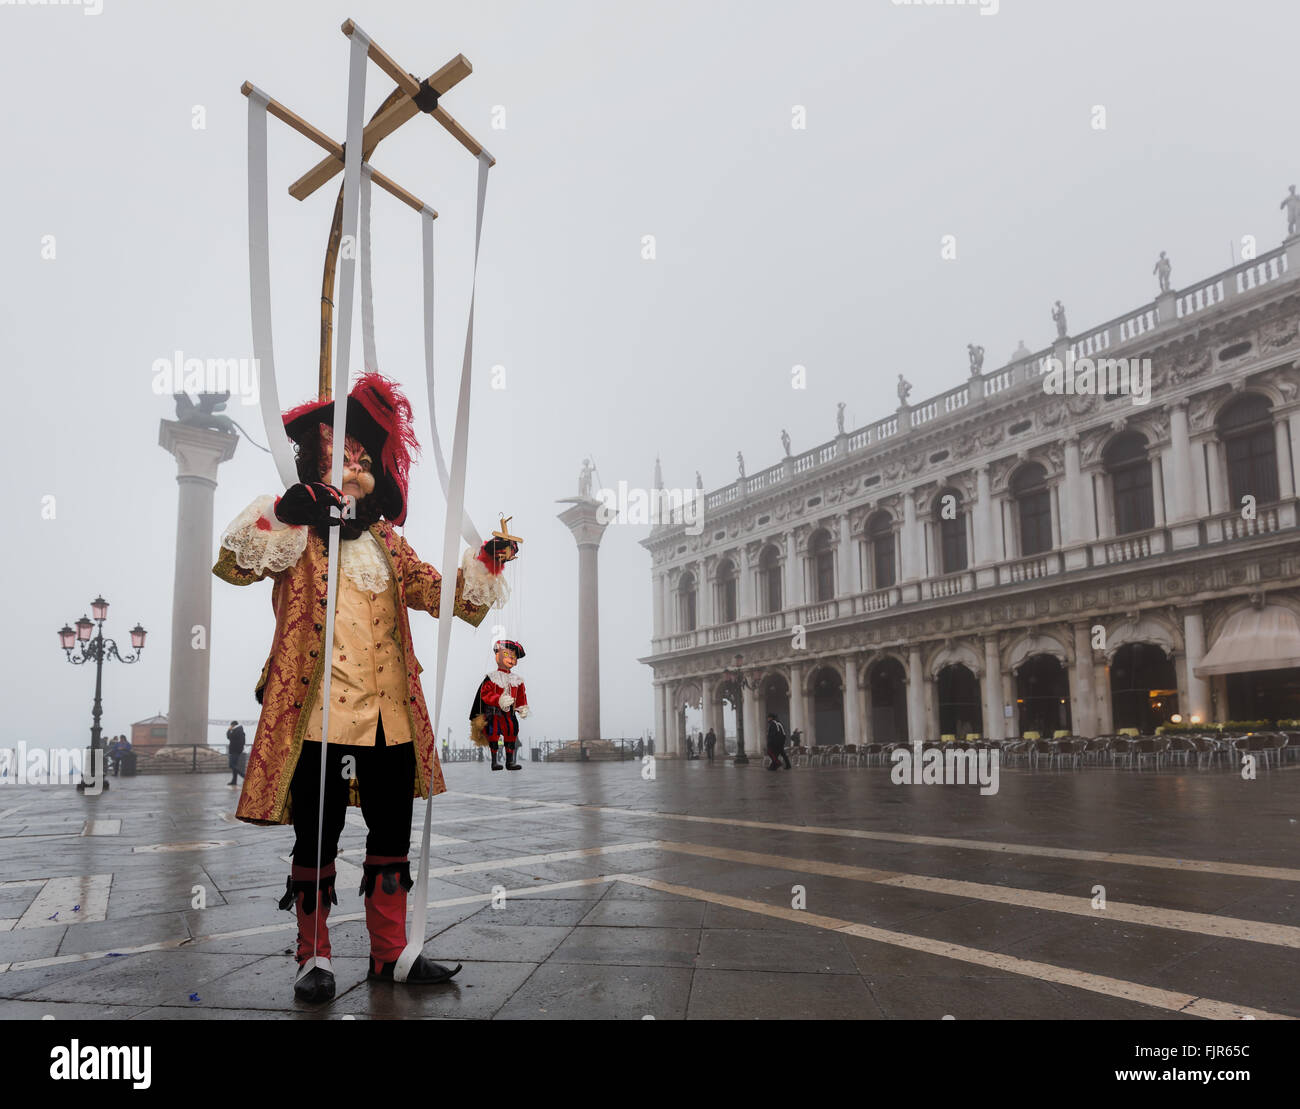 A man dressed up as puppeteer for the Carnival in Venice, Veneto, Italy - Stock Image